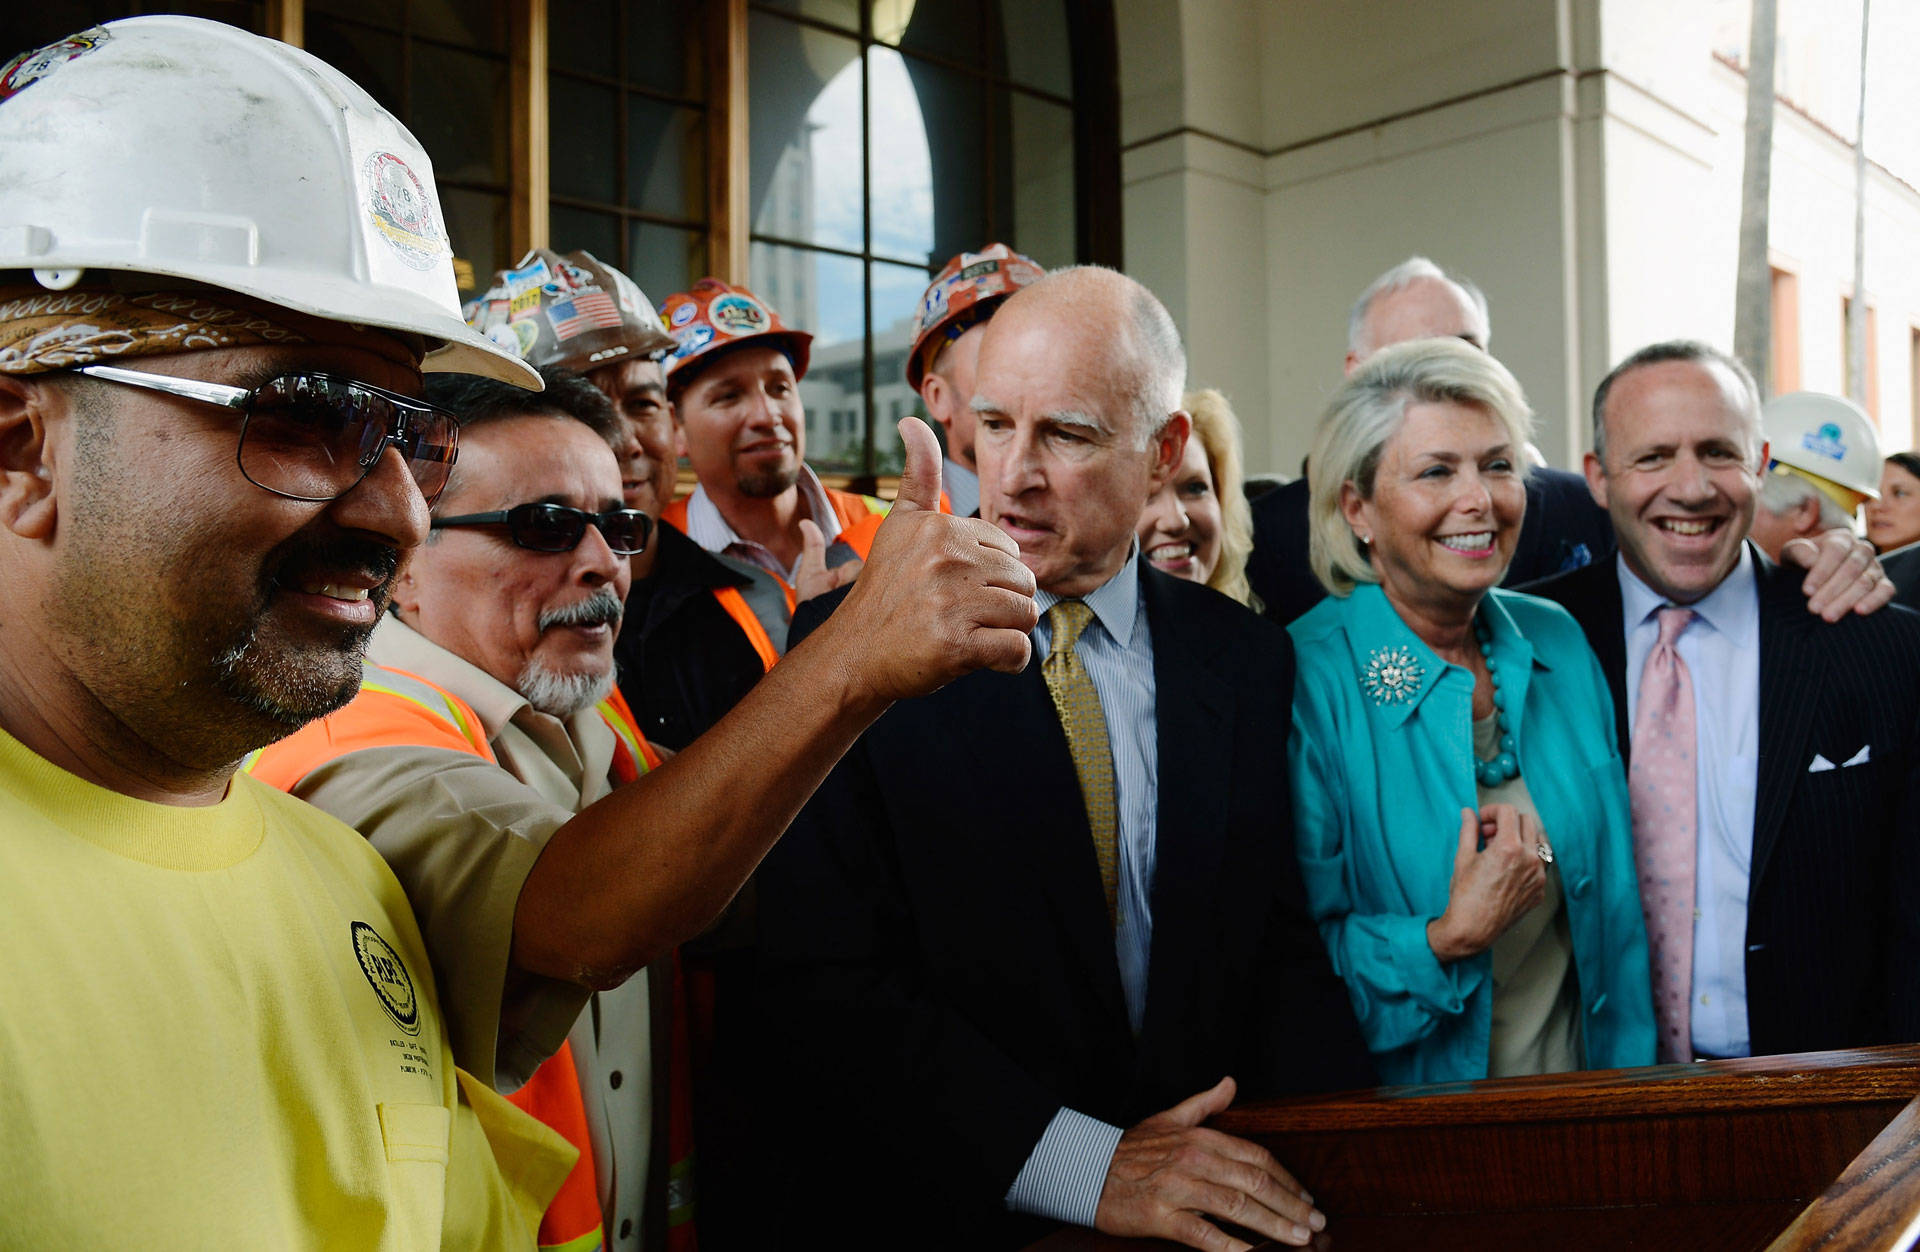 Gov. Brown, surrounded by construction workers and elected officials, speaks after signing legislation authorizing initial construction of California's high-speed rail line on July 18, 2012 in Los Angeles.